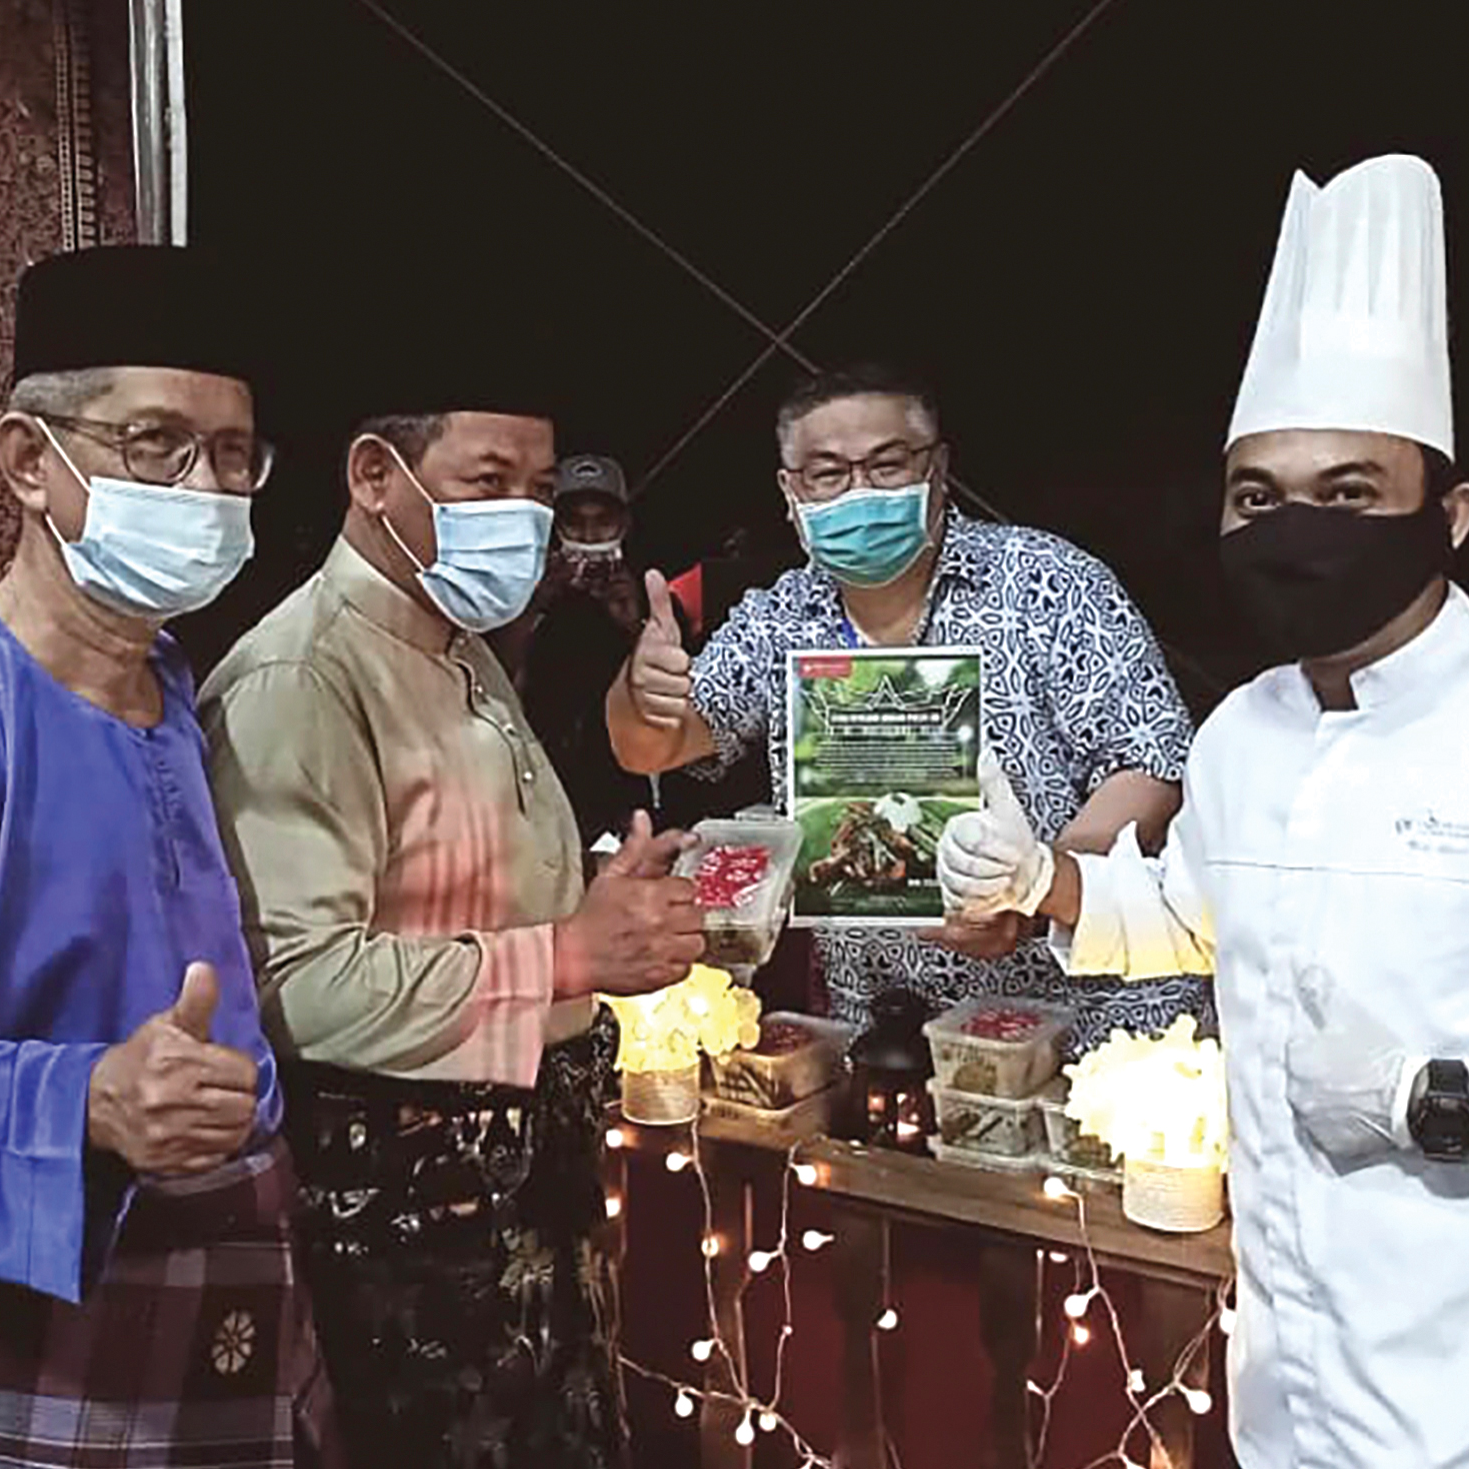 Lexis Hibiscus and Grand Lexis Wowed the Crowd with Authentic Tastes of Negeri Sembilan